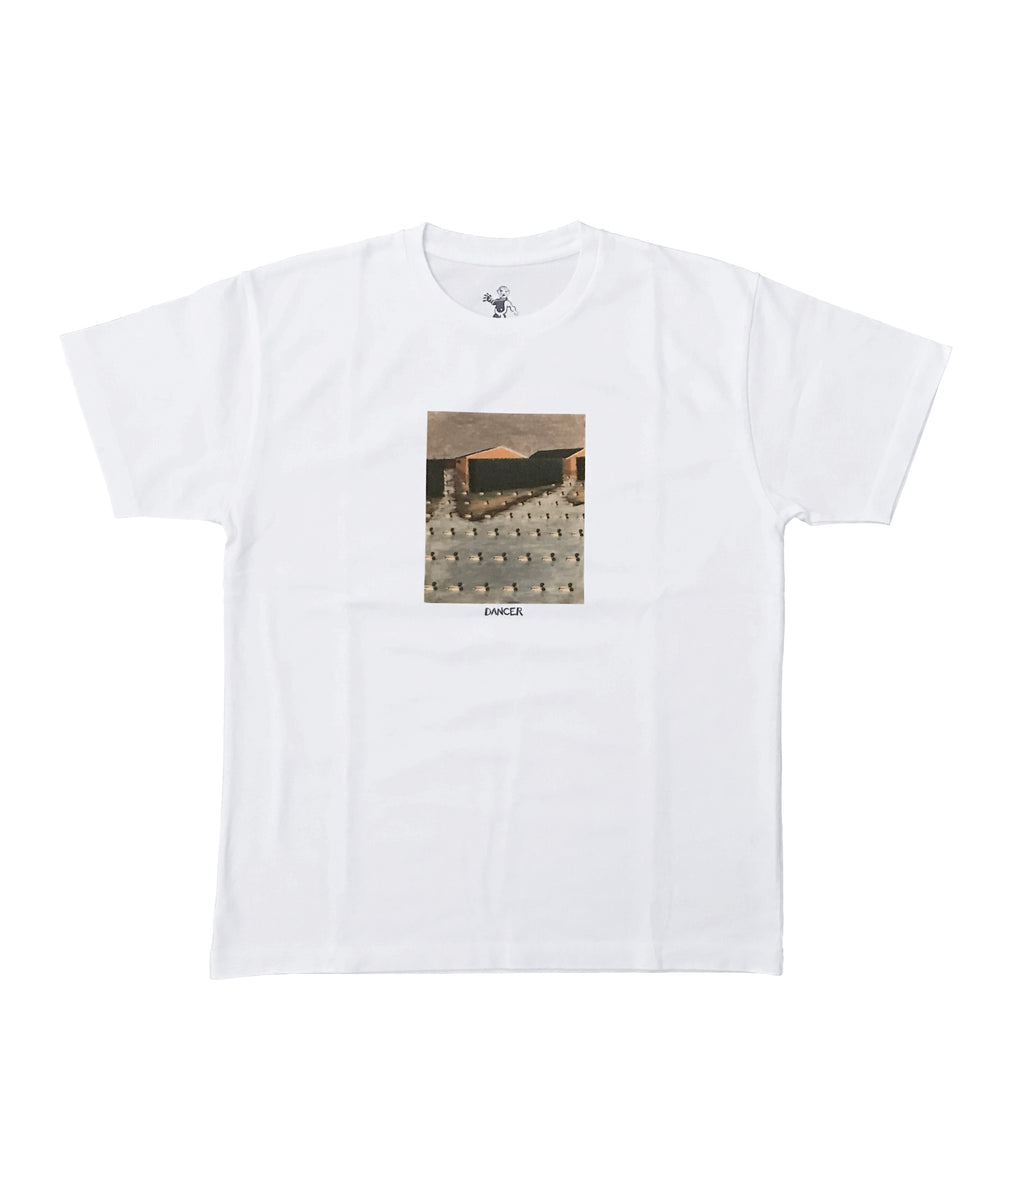 Dancer Wildlife Tee